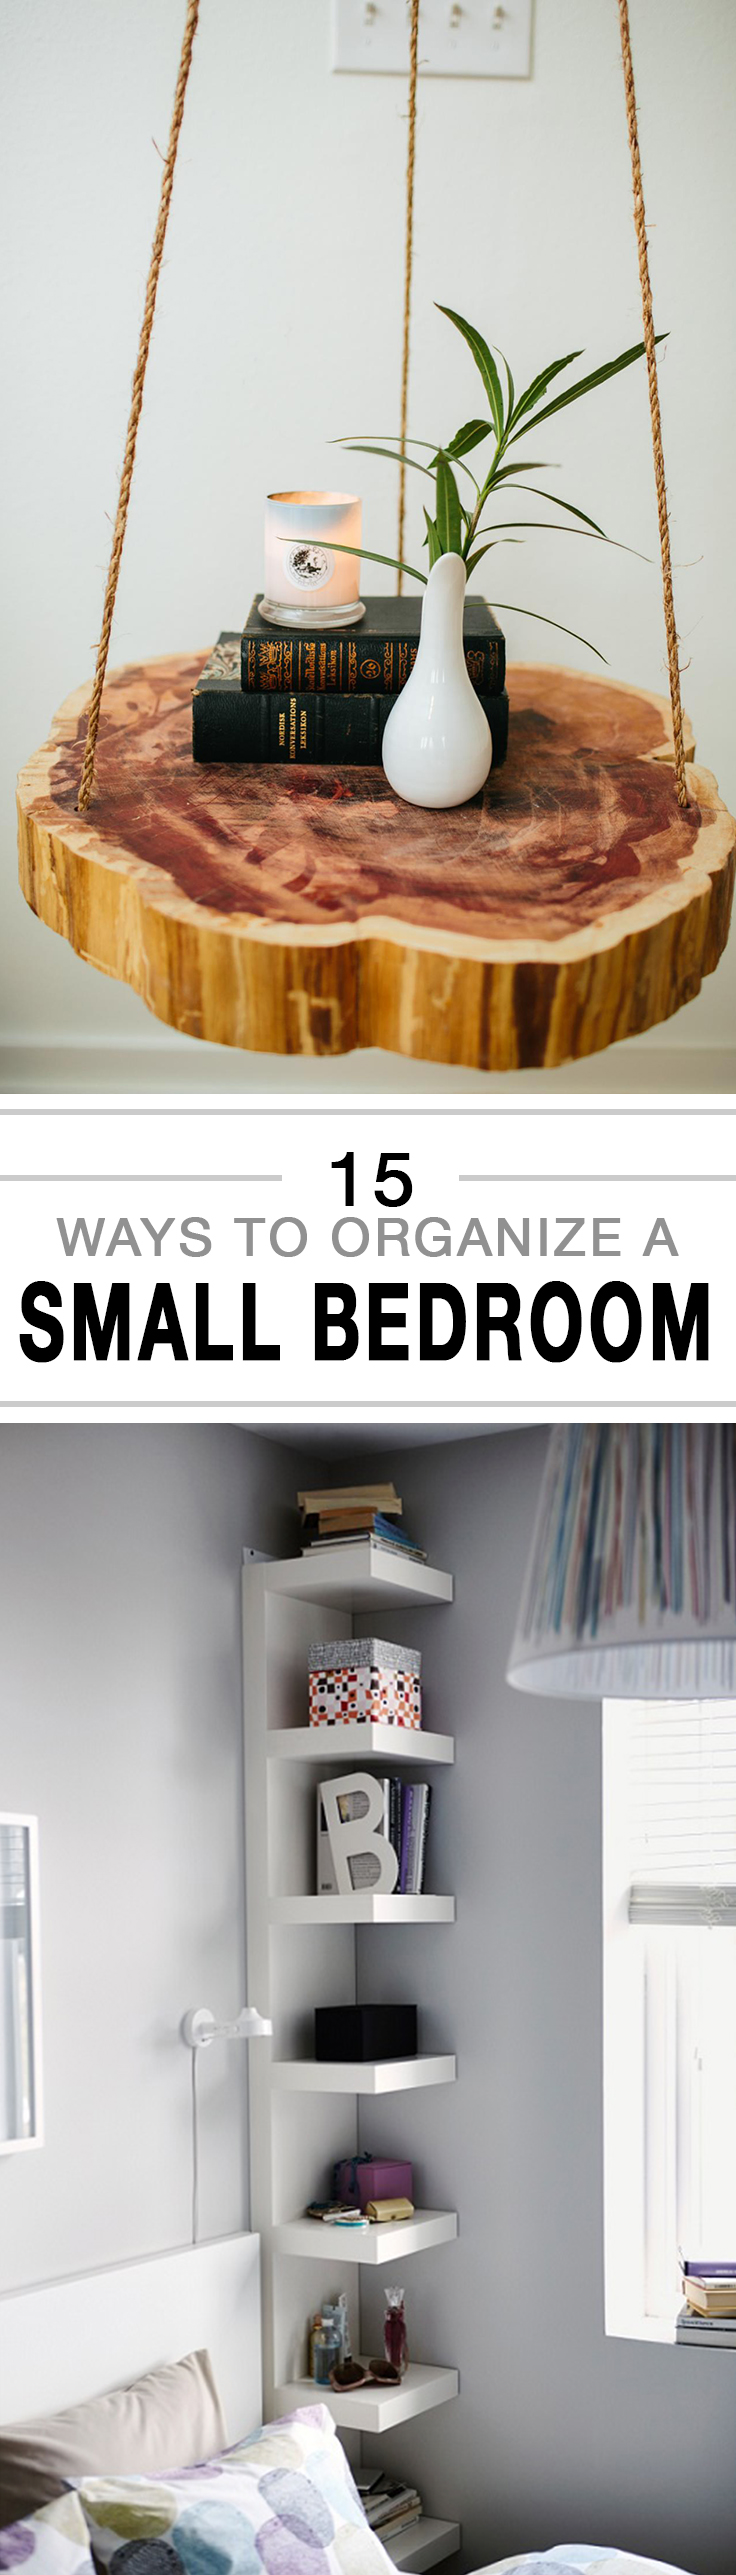 15 ways to organize a small bedroom -